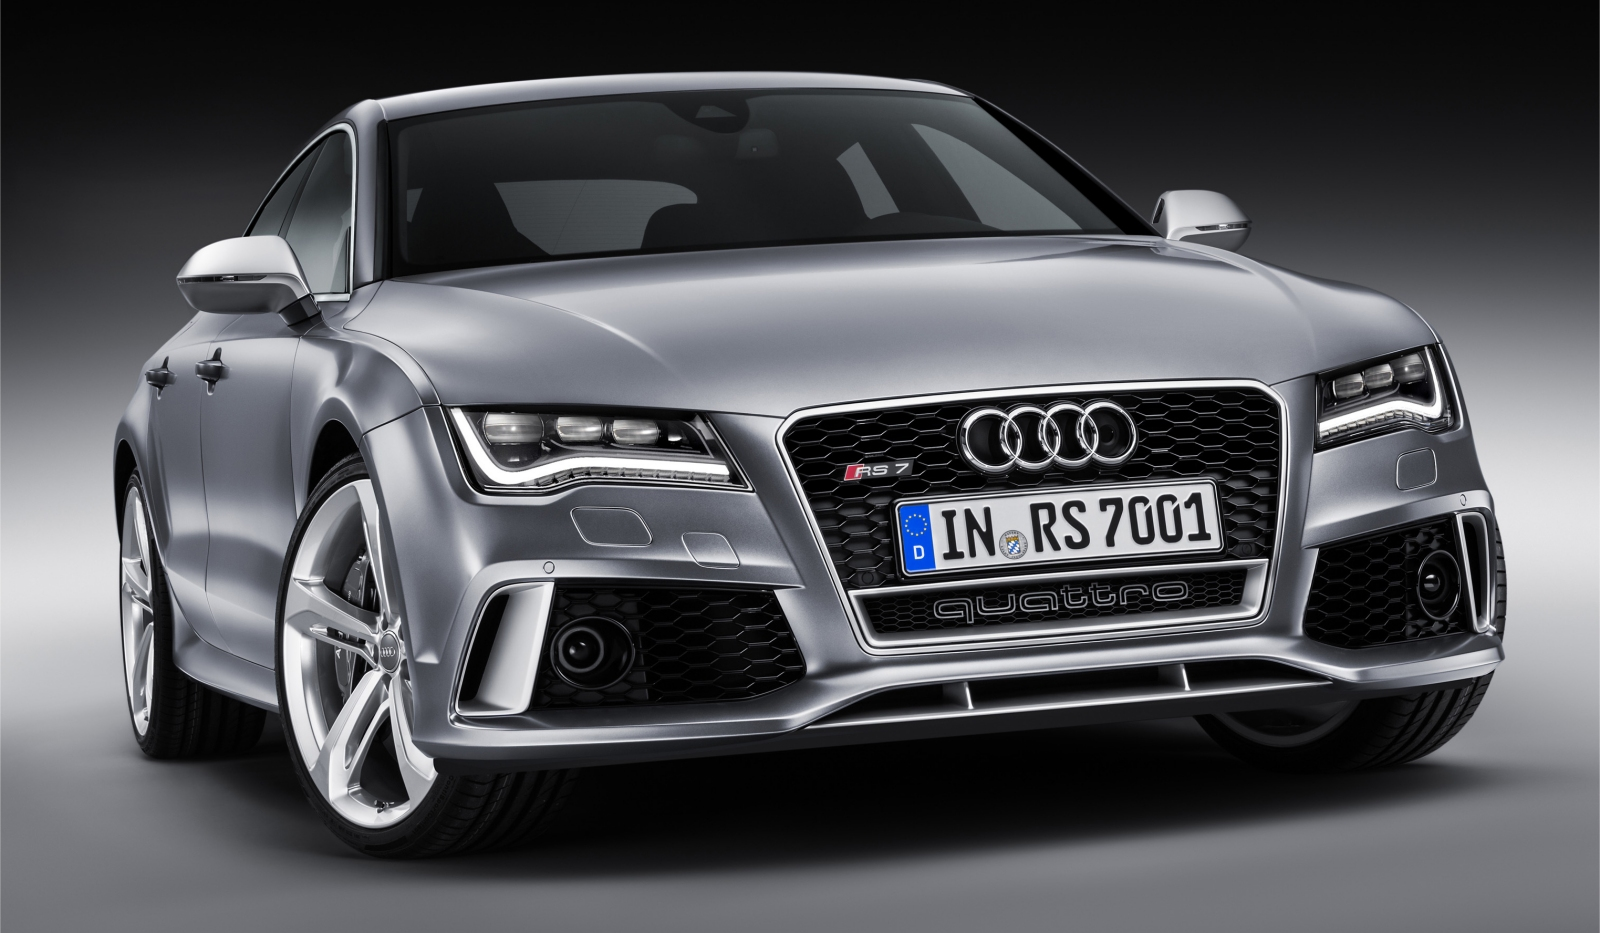 Audi Has Finally Revealed The Audi Rs7 Which Has Been In The Rumormill .